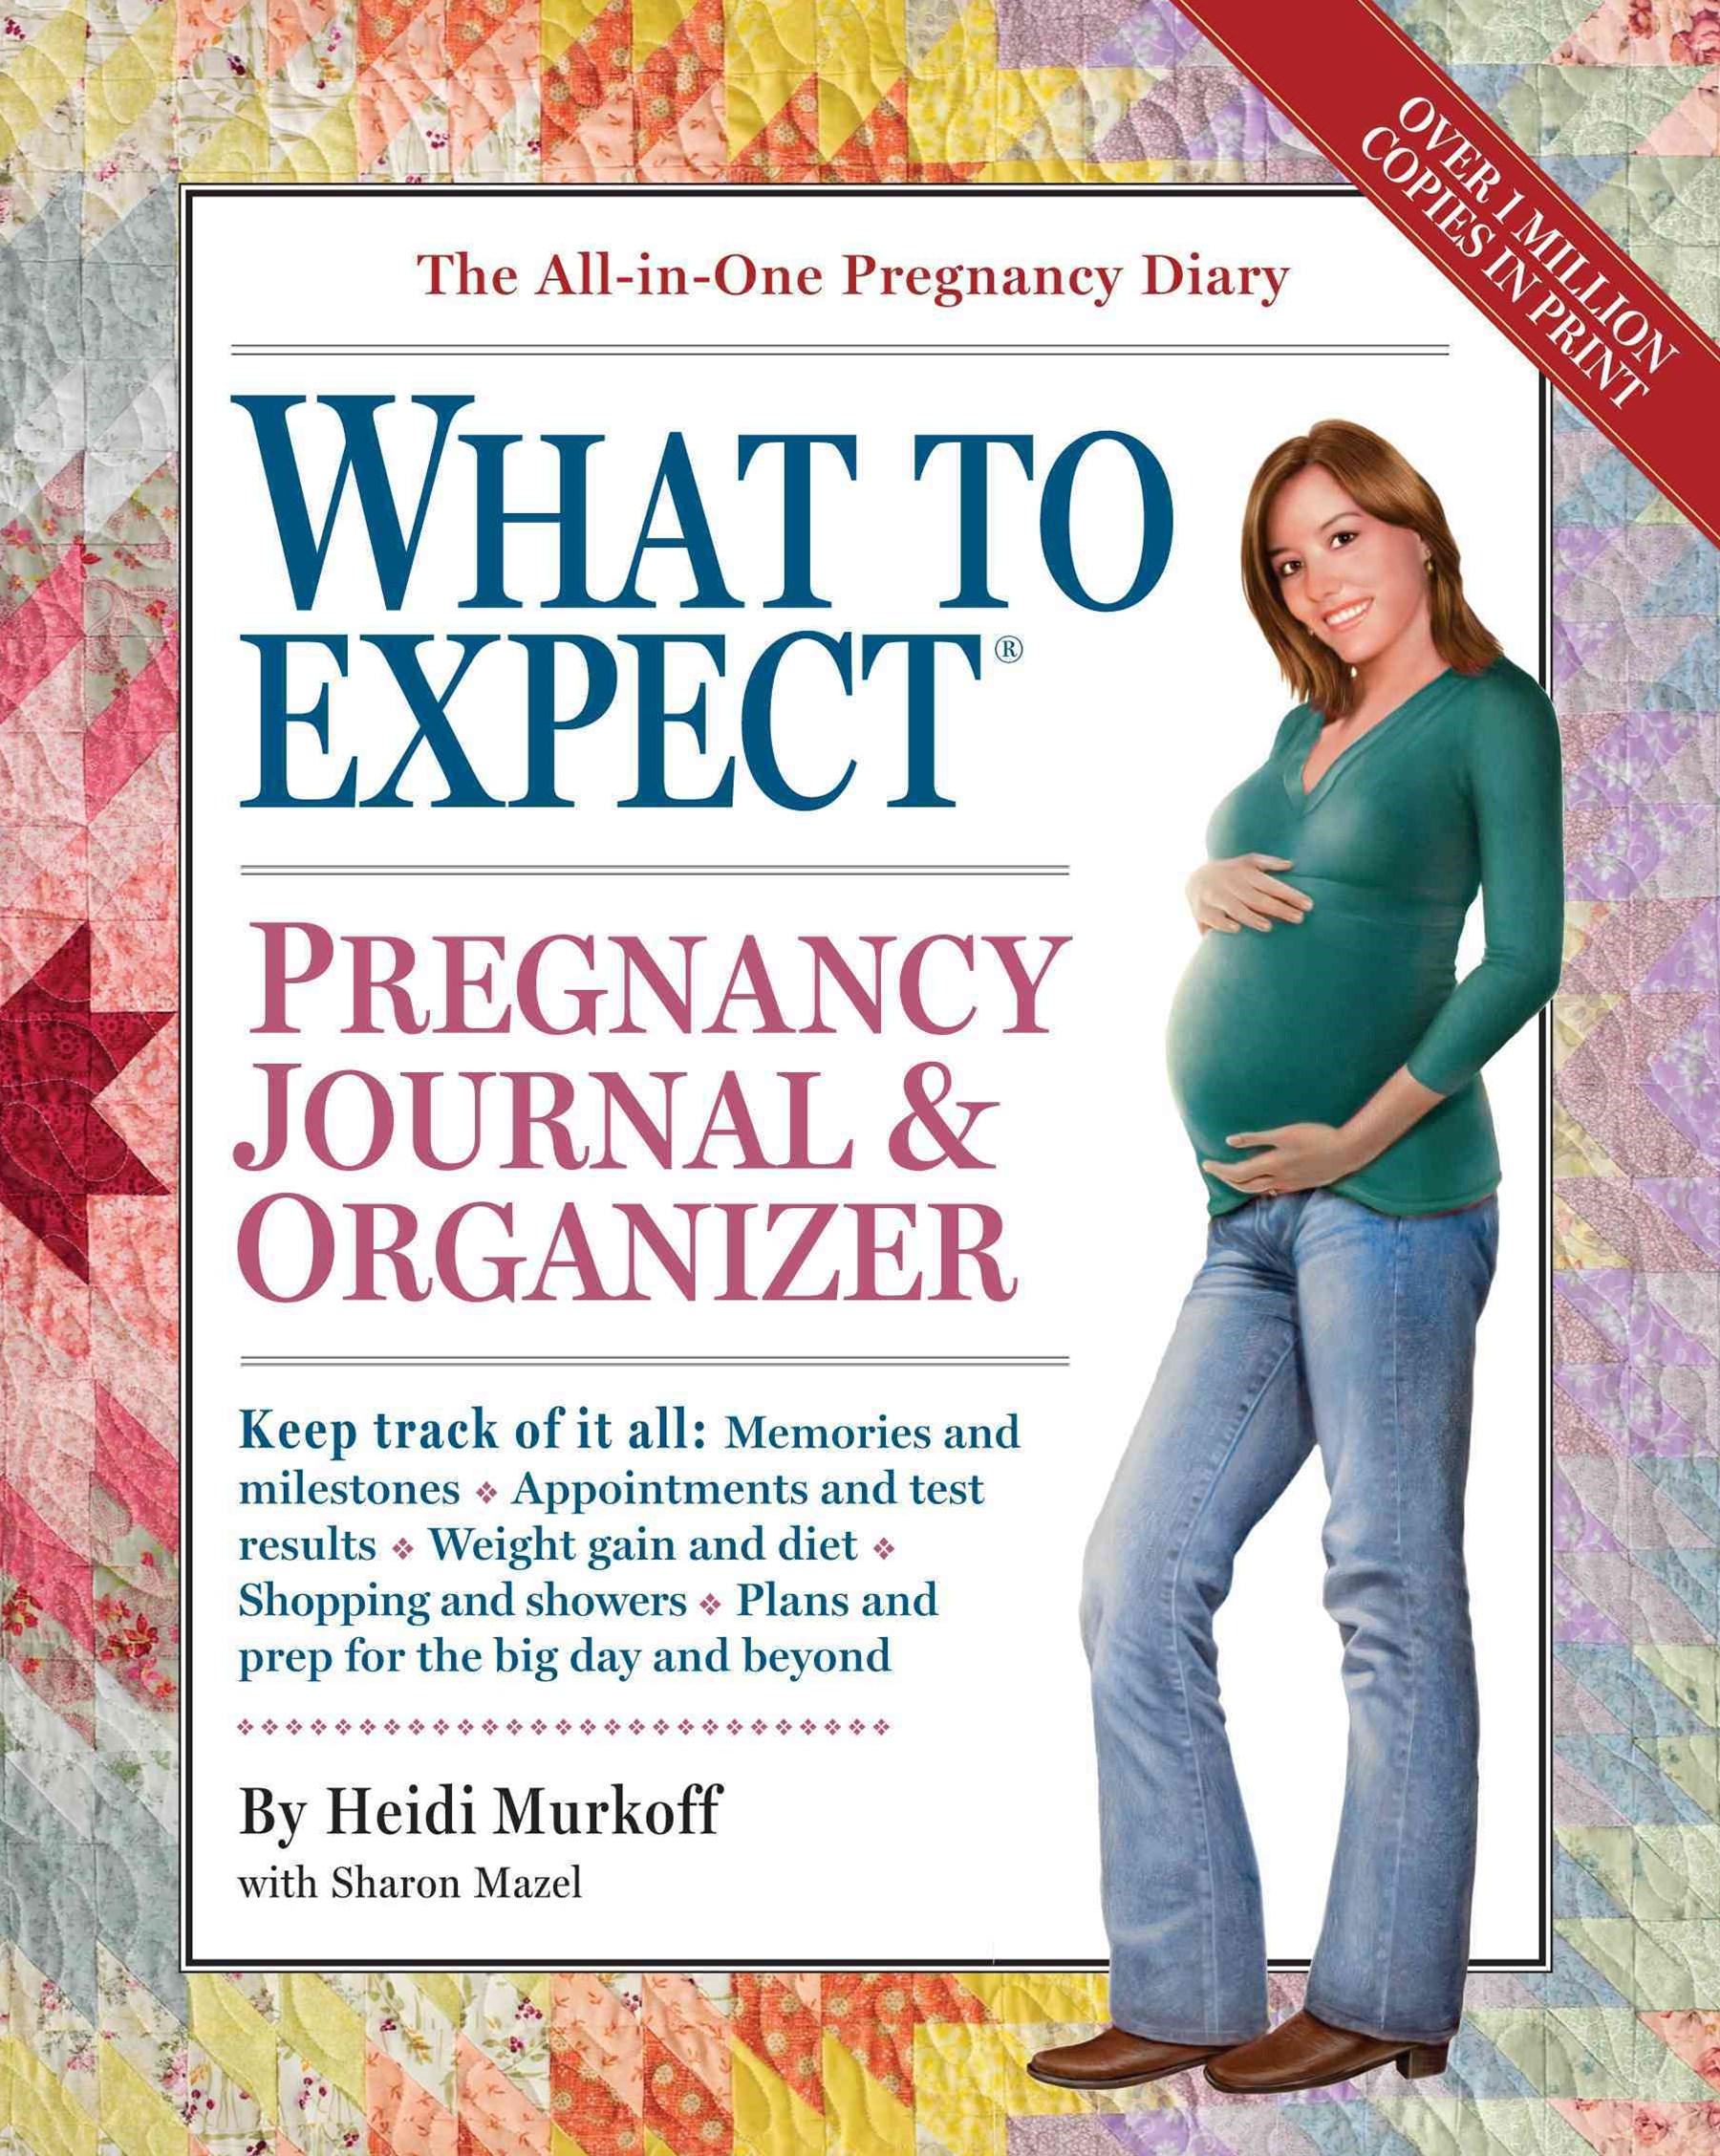 The What to Expect Pregnancy Journal and Organizer